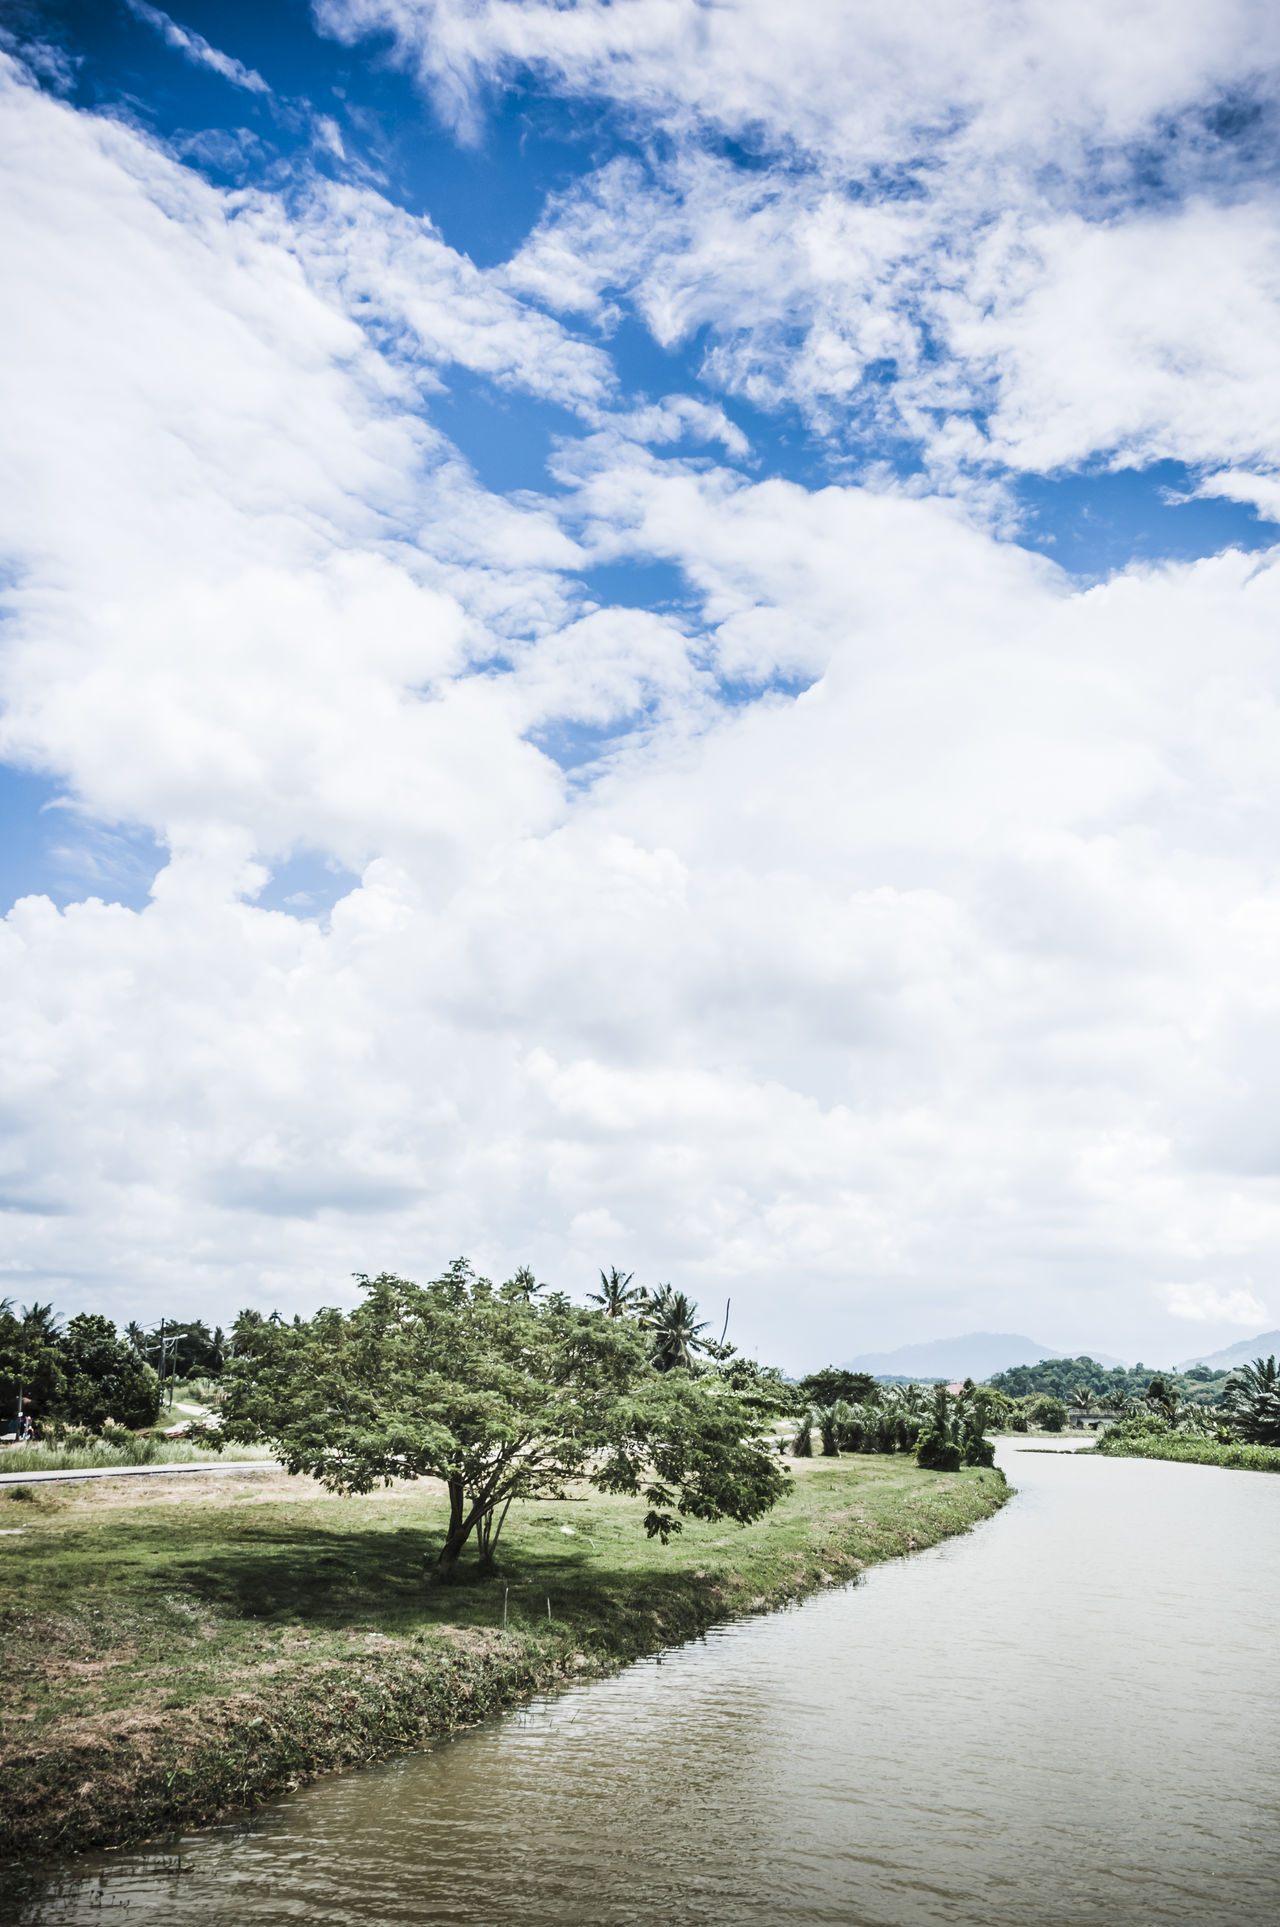 Beauty In Nature Calm Clouds And Sky Cumulus Cloud Idyllic Landscapes Landscapes With WhiteWall Nature Non-urban Scene Outdoors Scenics Serene Outdoors Solitude Tranquil Scene Tranquility Tree Water